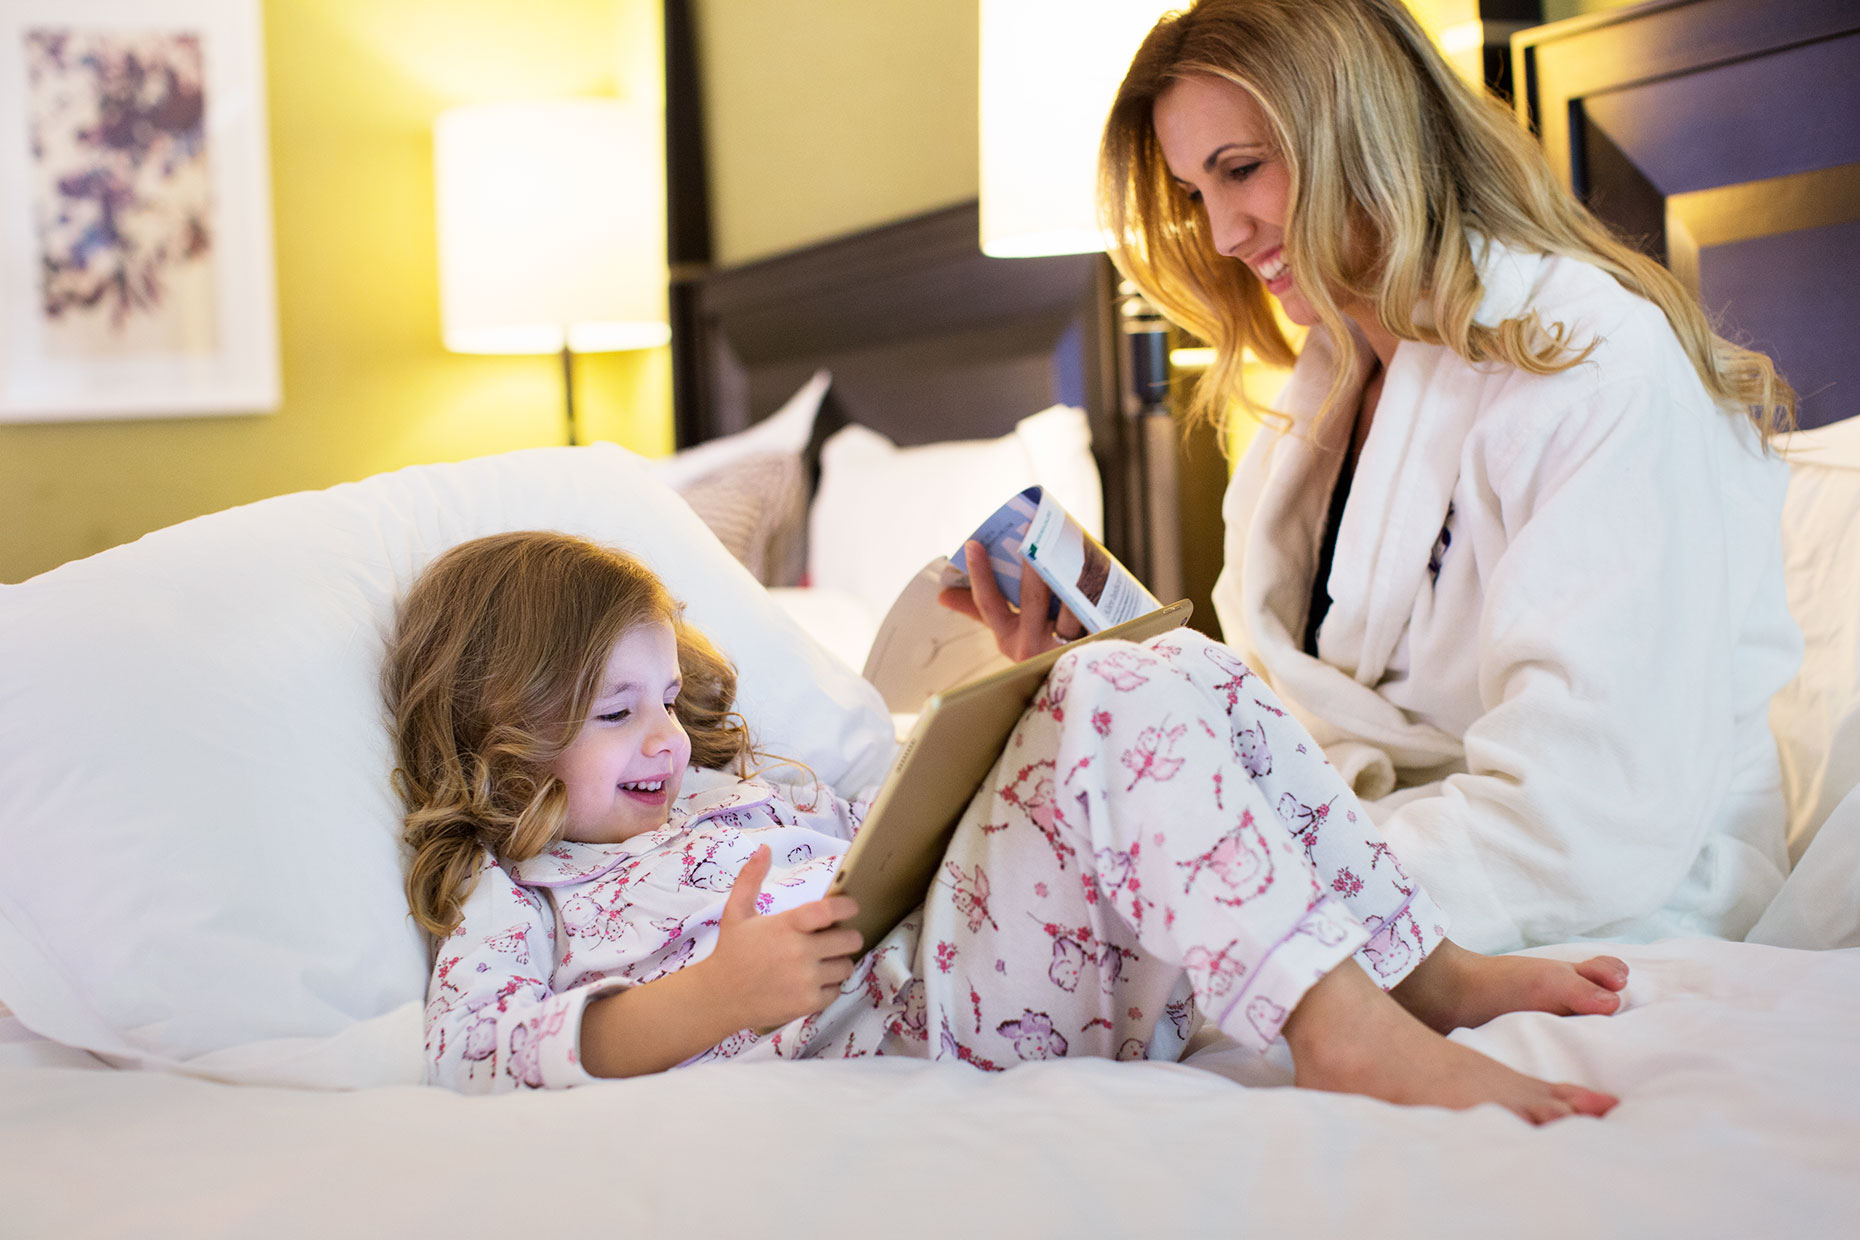 mother-and-daughter-in-hotel